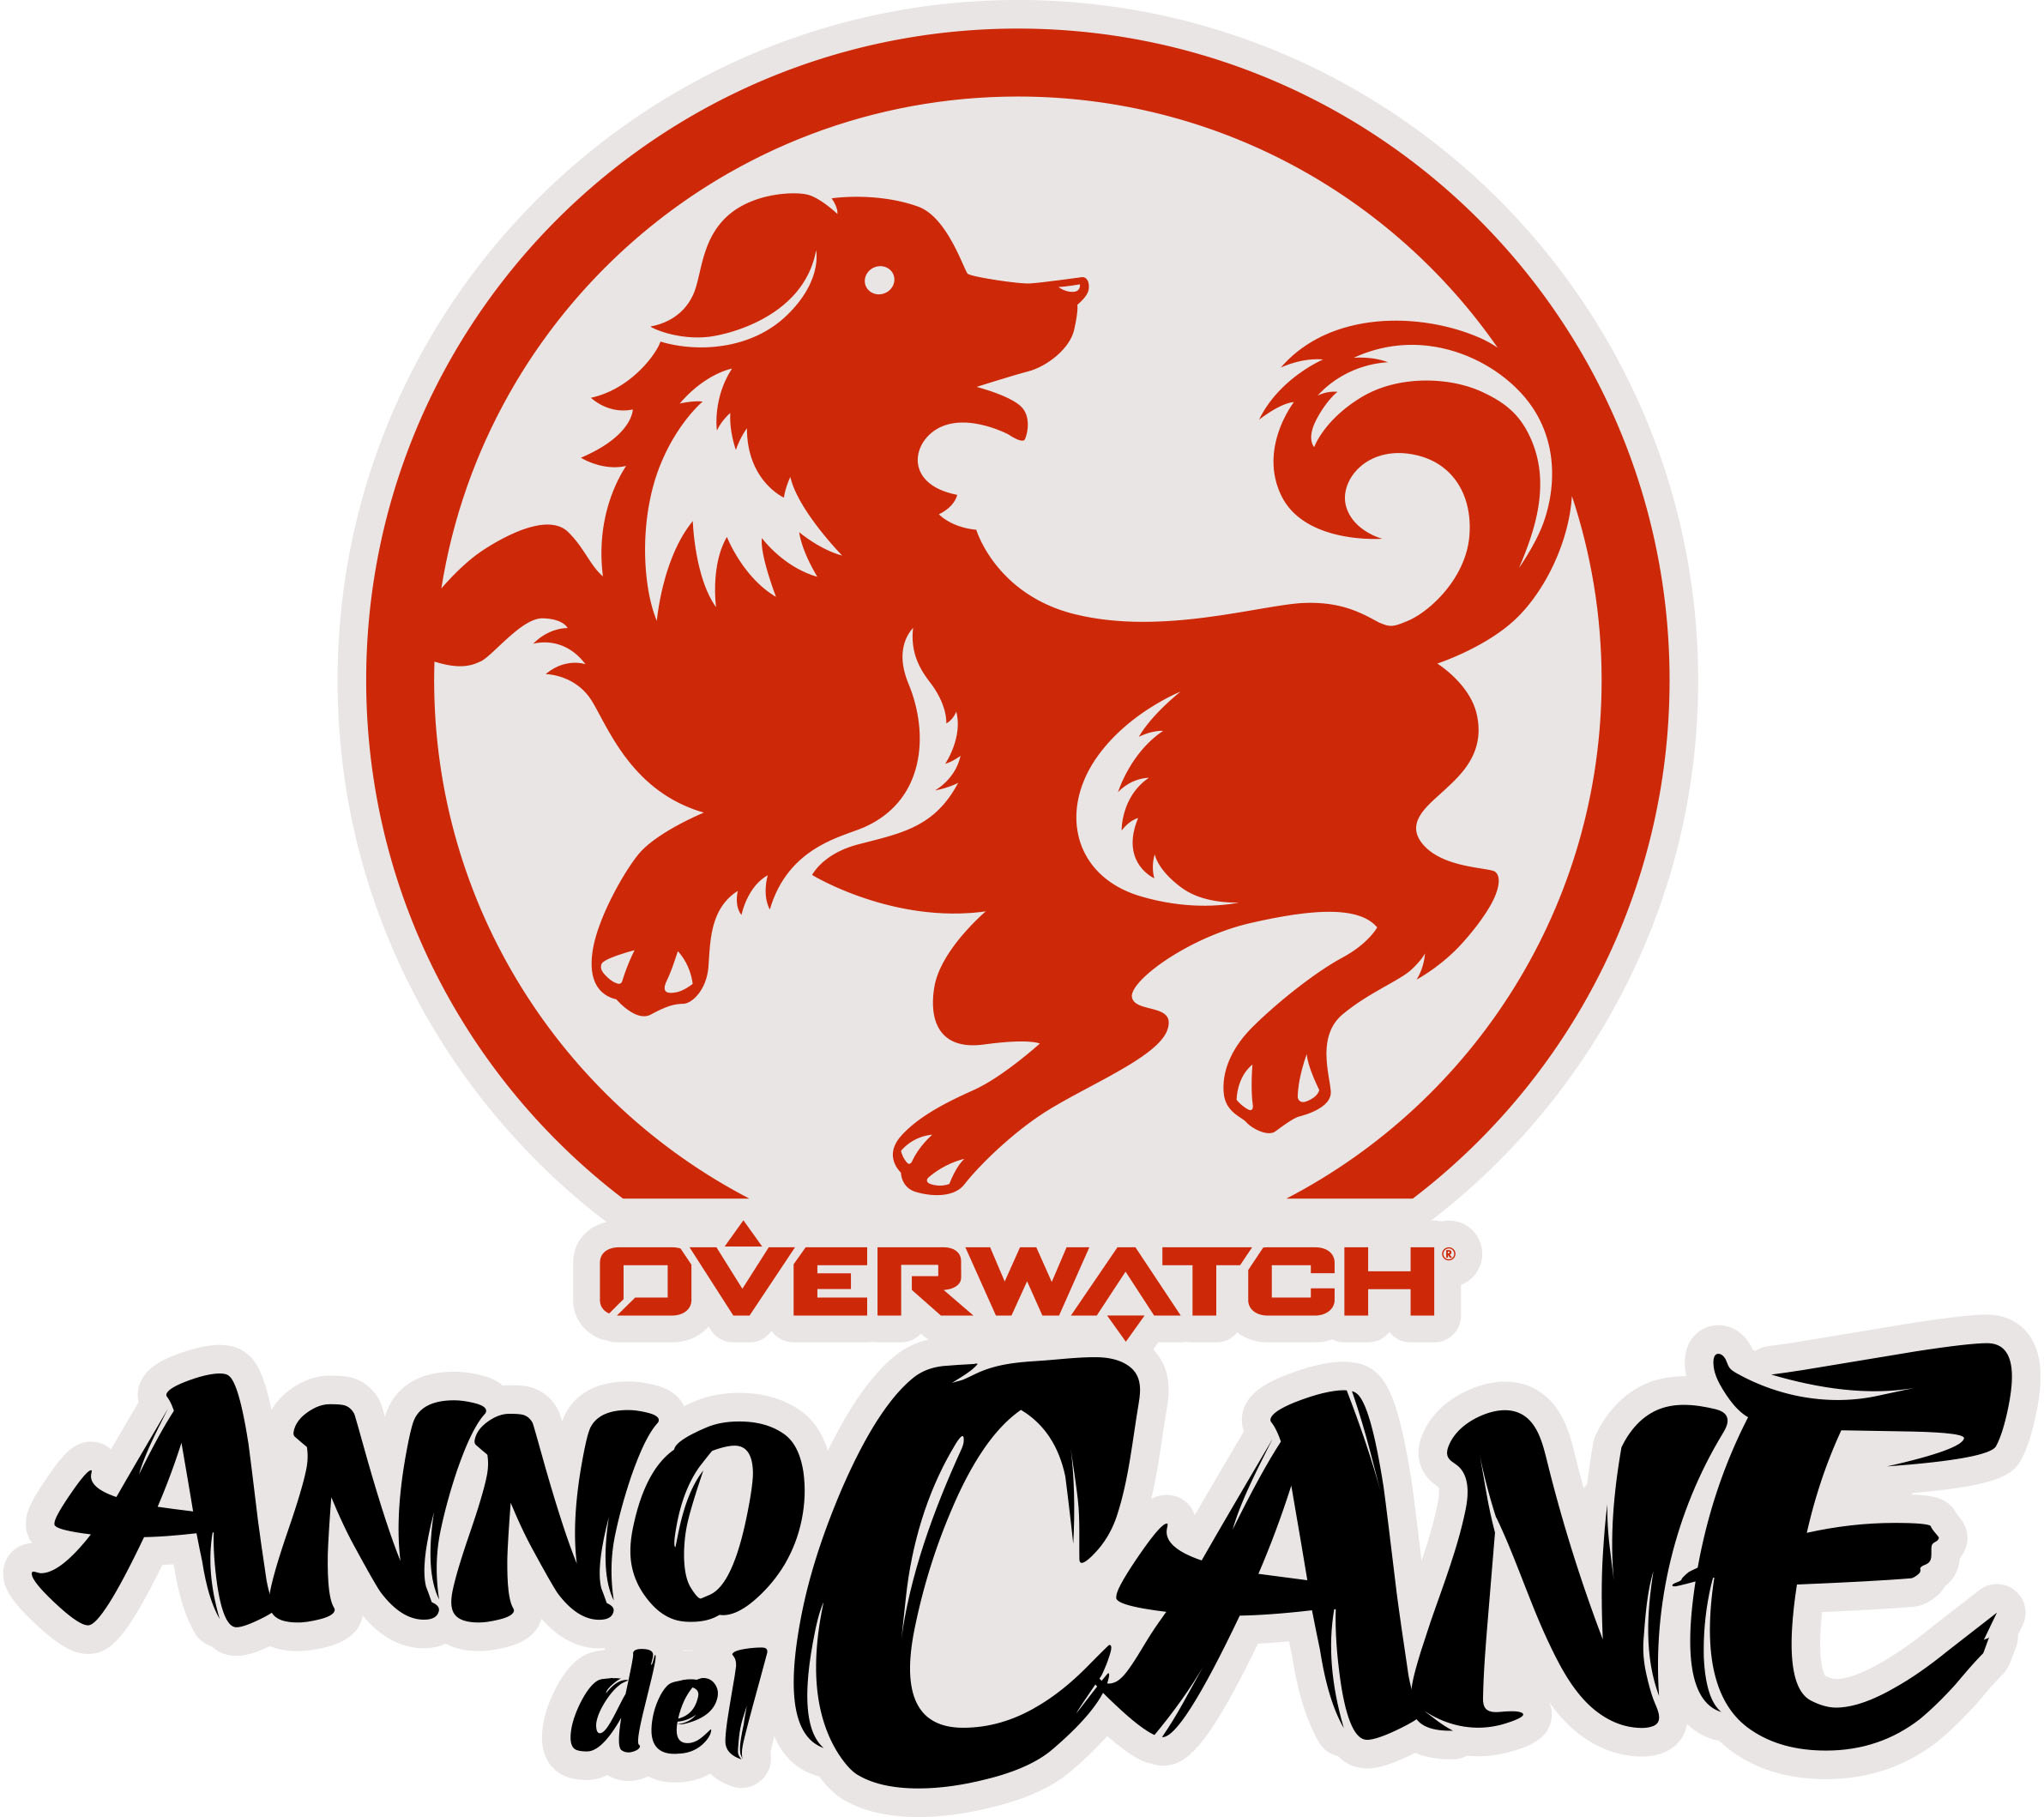 Overwatch Anno del Cane